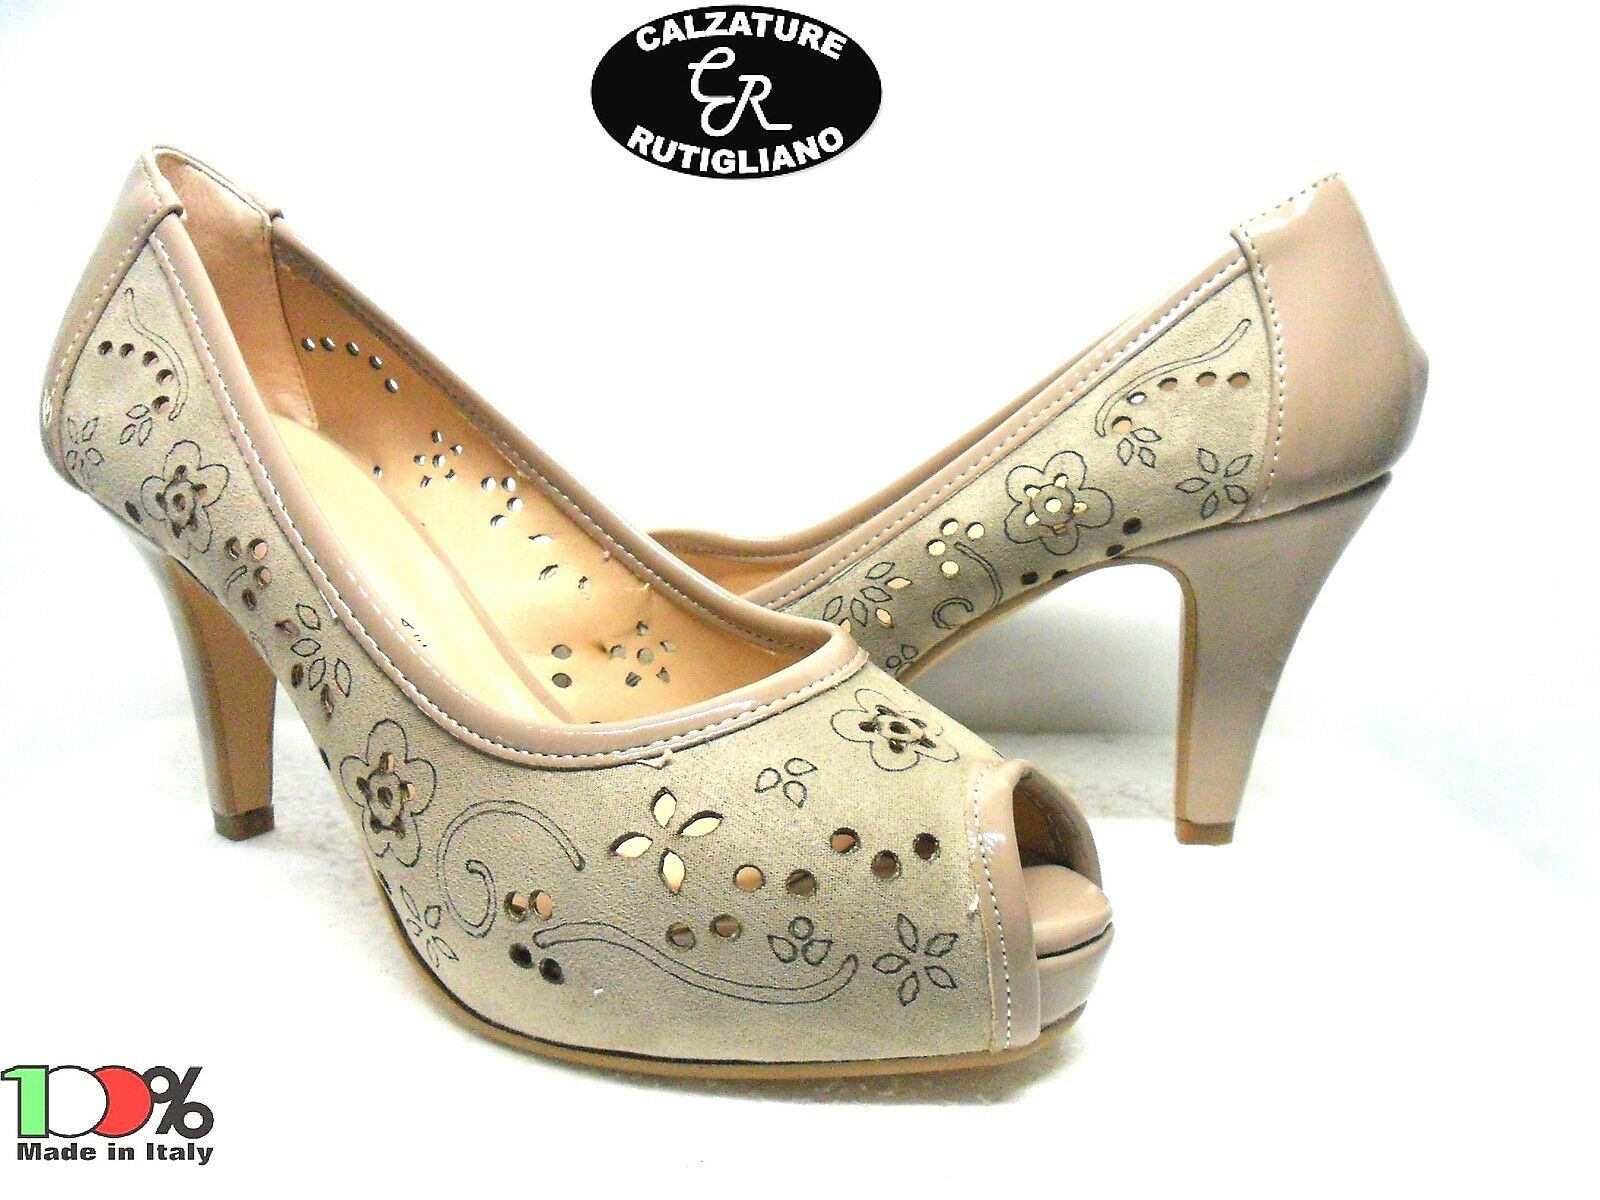 ONDE PIANE art.6712 chaussures femmes MODELLO DECOLTE' SPUNTATO MADE IN ITALY CORDA